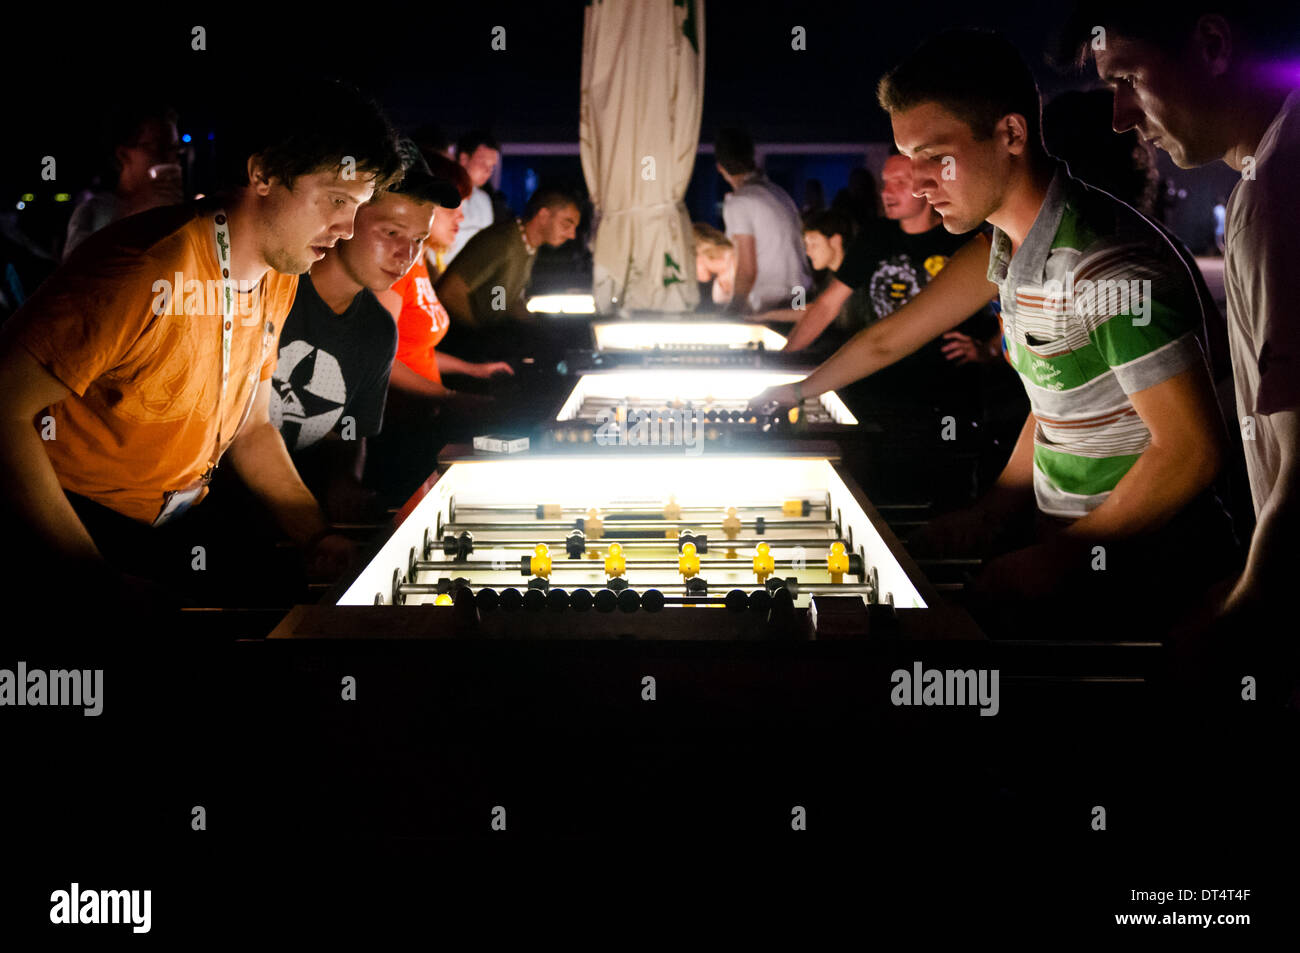 Young group of people playing and enjoying table football at night at Bažant Pohoda festival, Trenčín, Slovakia - Stock Image